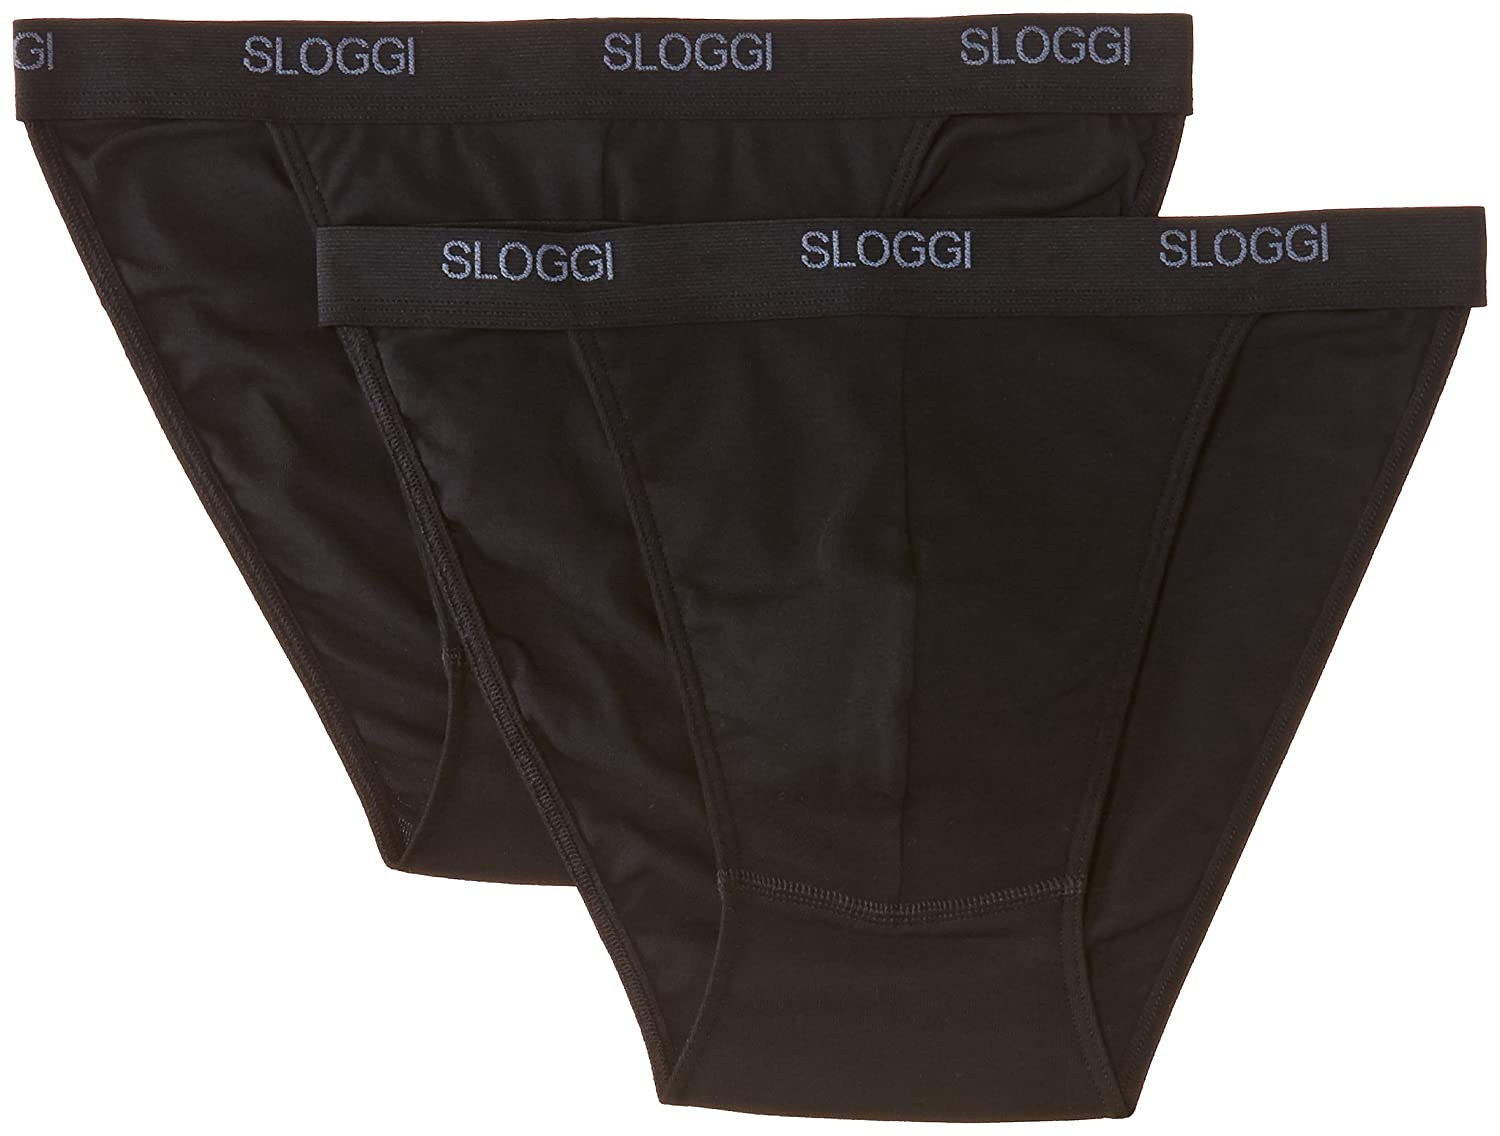 e579645be6ee Sloggi Basic 2-Pack Tanga